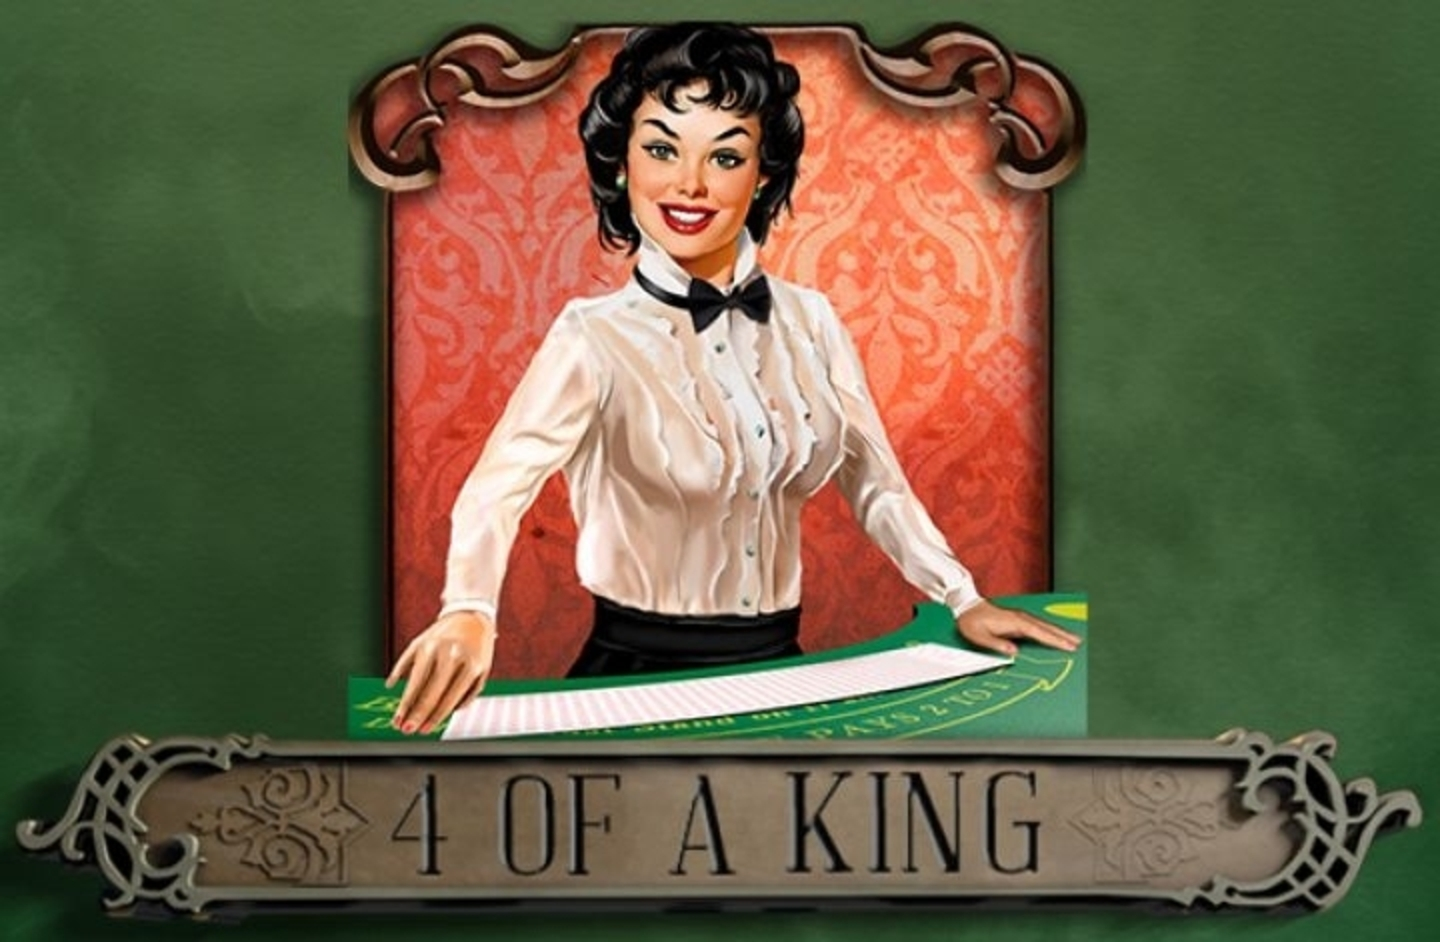 4 of a King Online Slot Demo Game by Endorphina